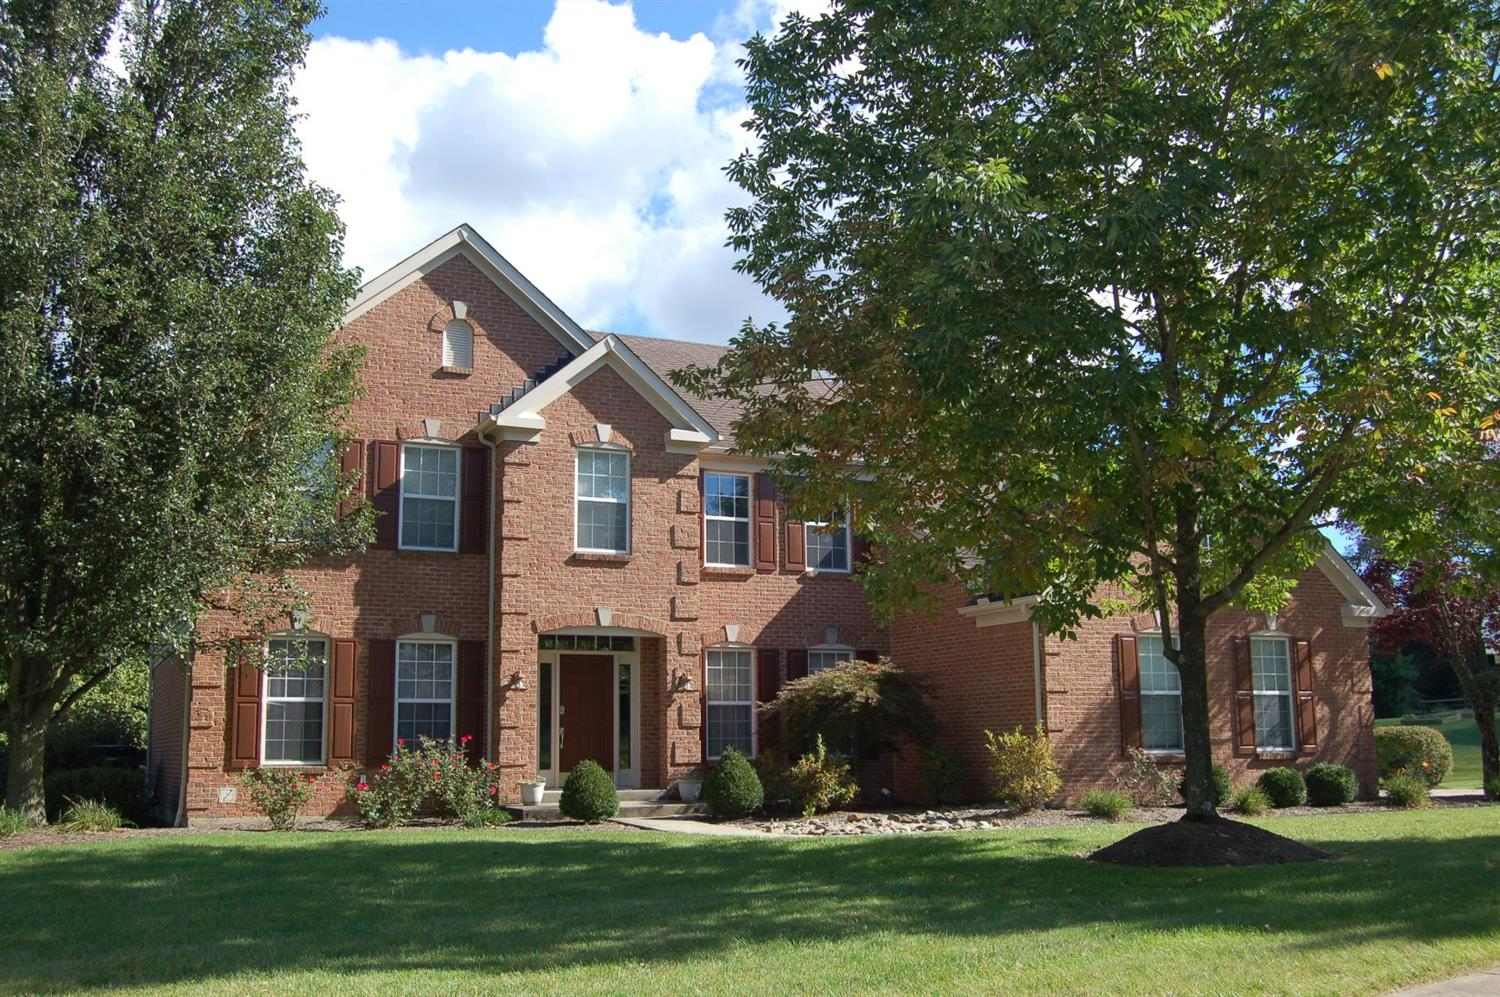 Property for sale at 11930 Riveroaks Drive, Symmes Twp,  OH 45140